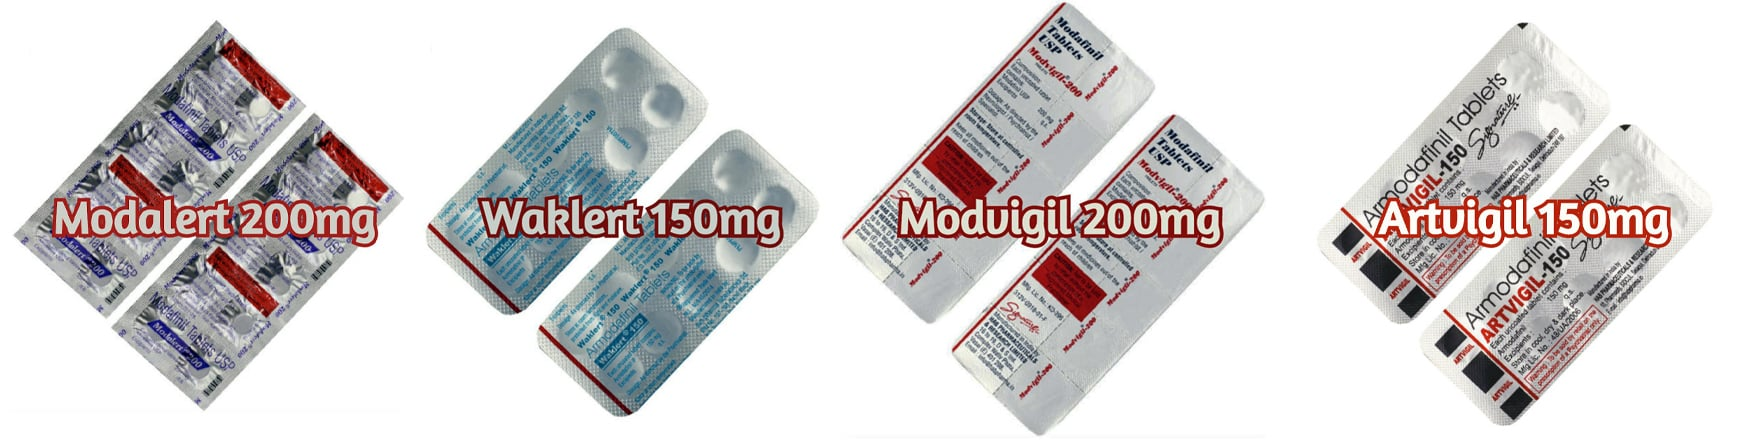 Which Modafinil is the Best